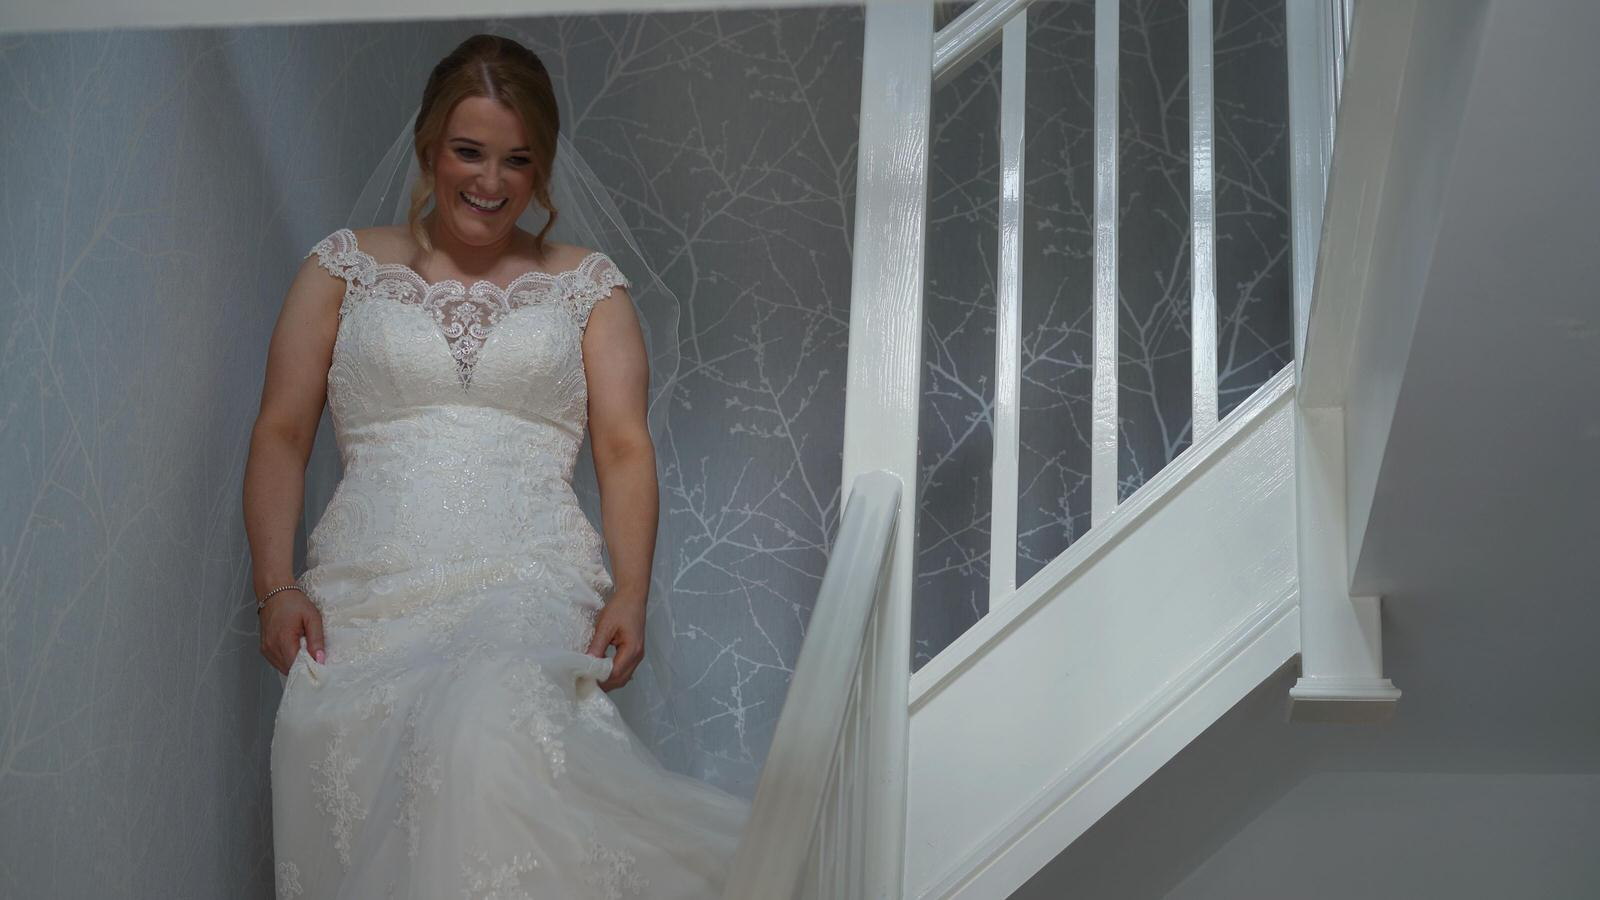 bride in wedding dress walks down stairs at home